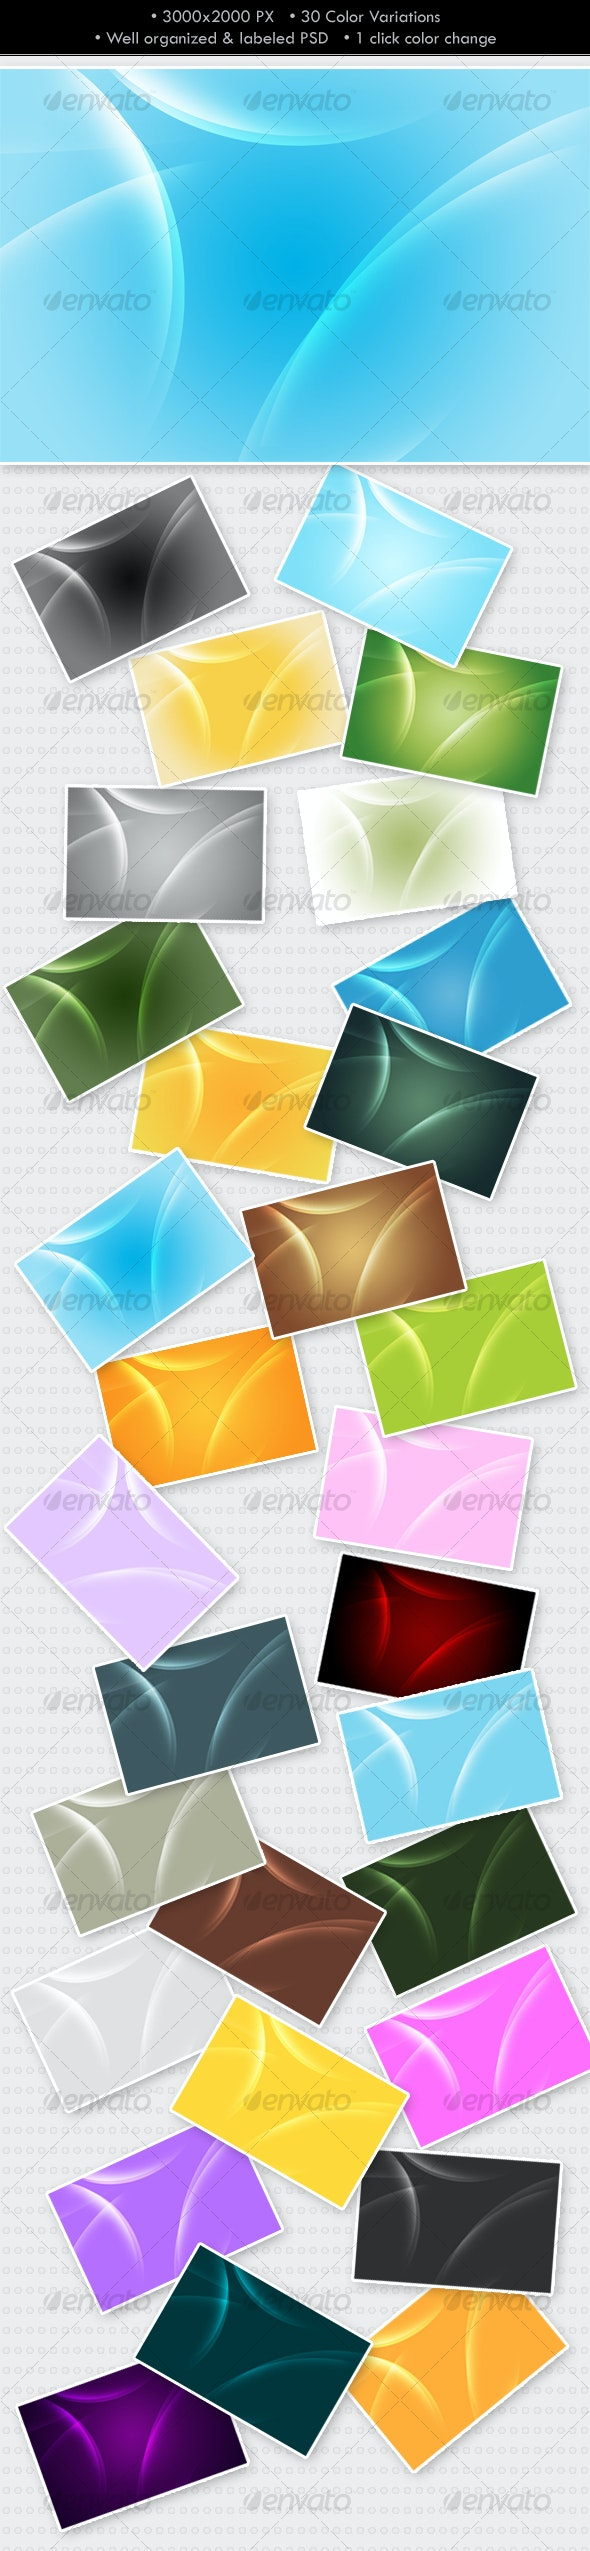 Glowing Abstract Background (30 colors) - Abstract Backgrounds